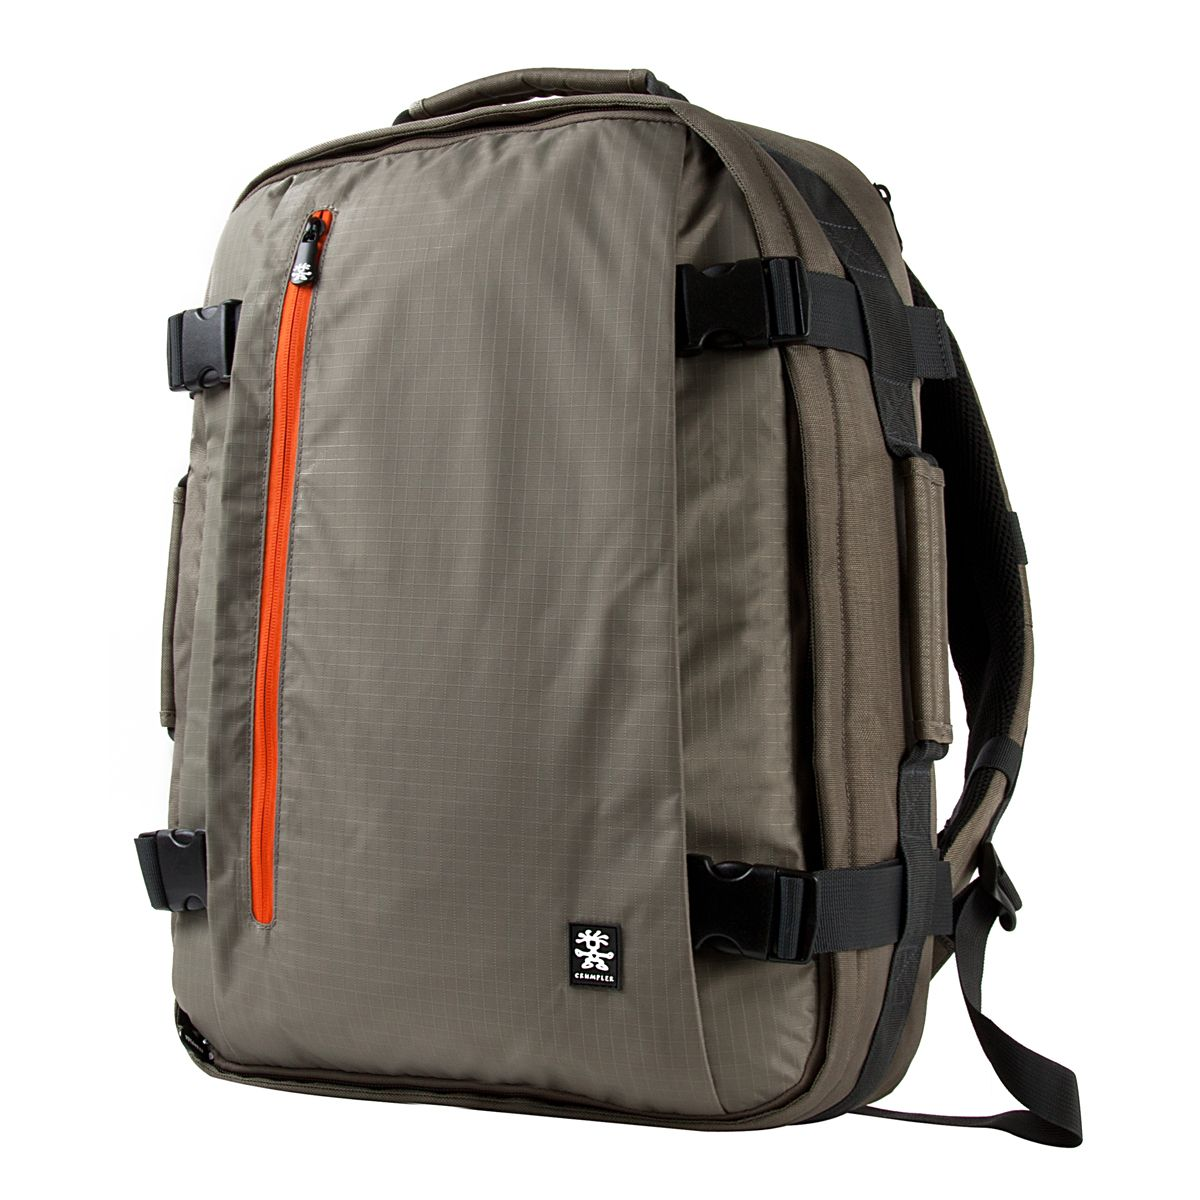 3d8d8098a7 Track Jack Board Backpack - Crumpler --- Looks like a great carryon packing  only backpack!